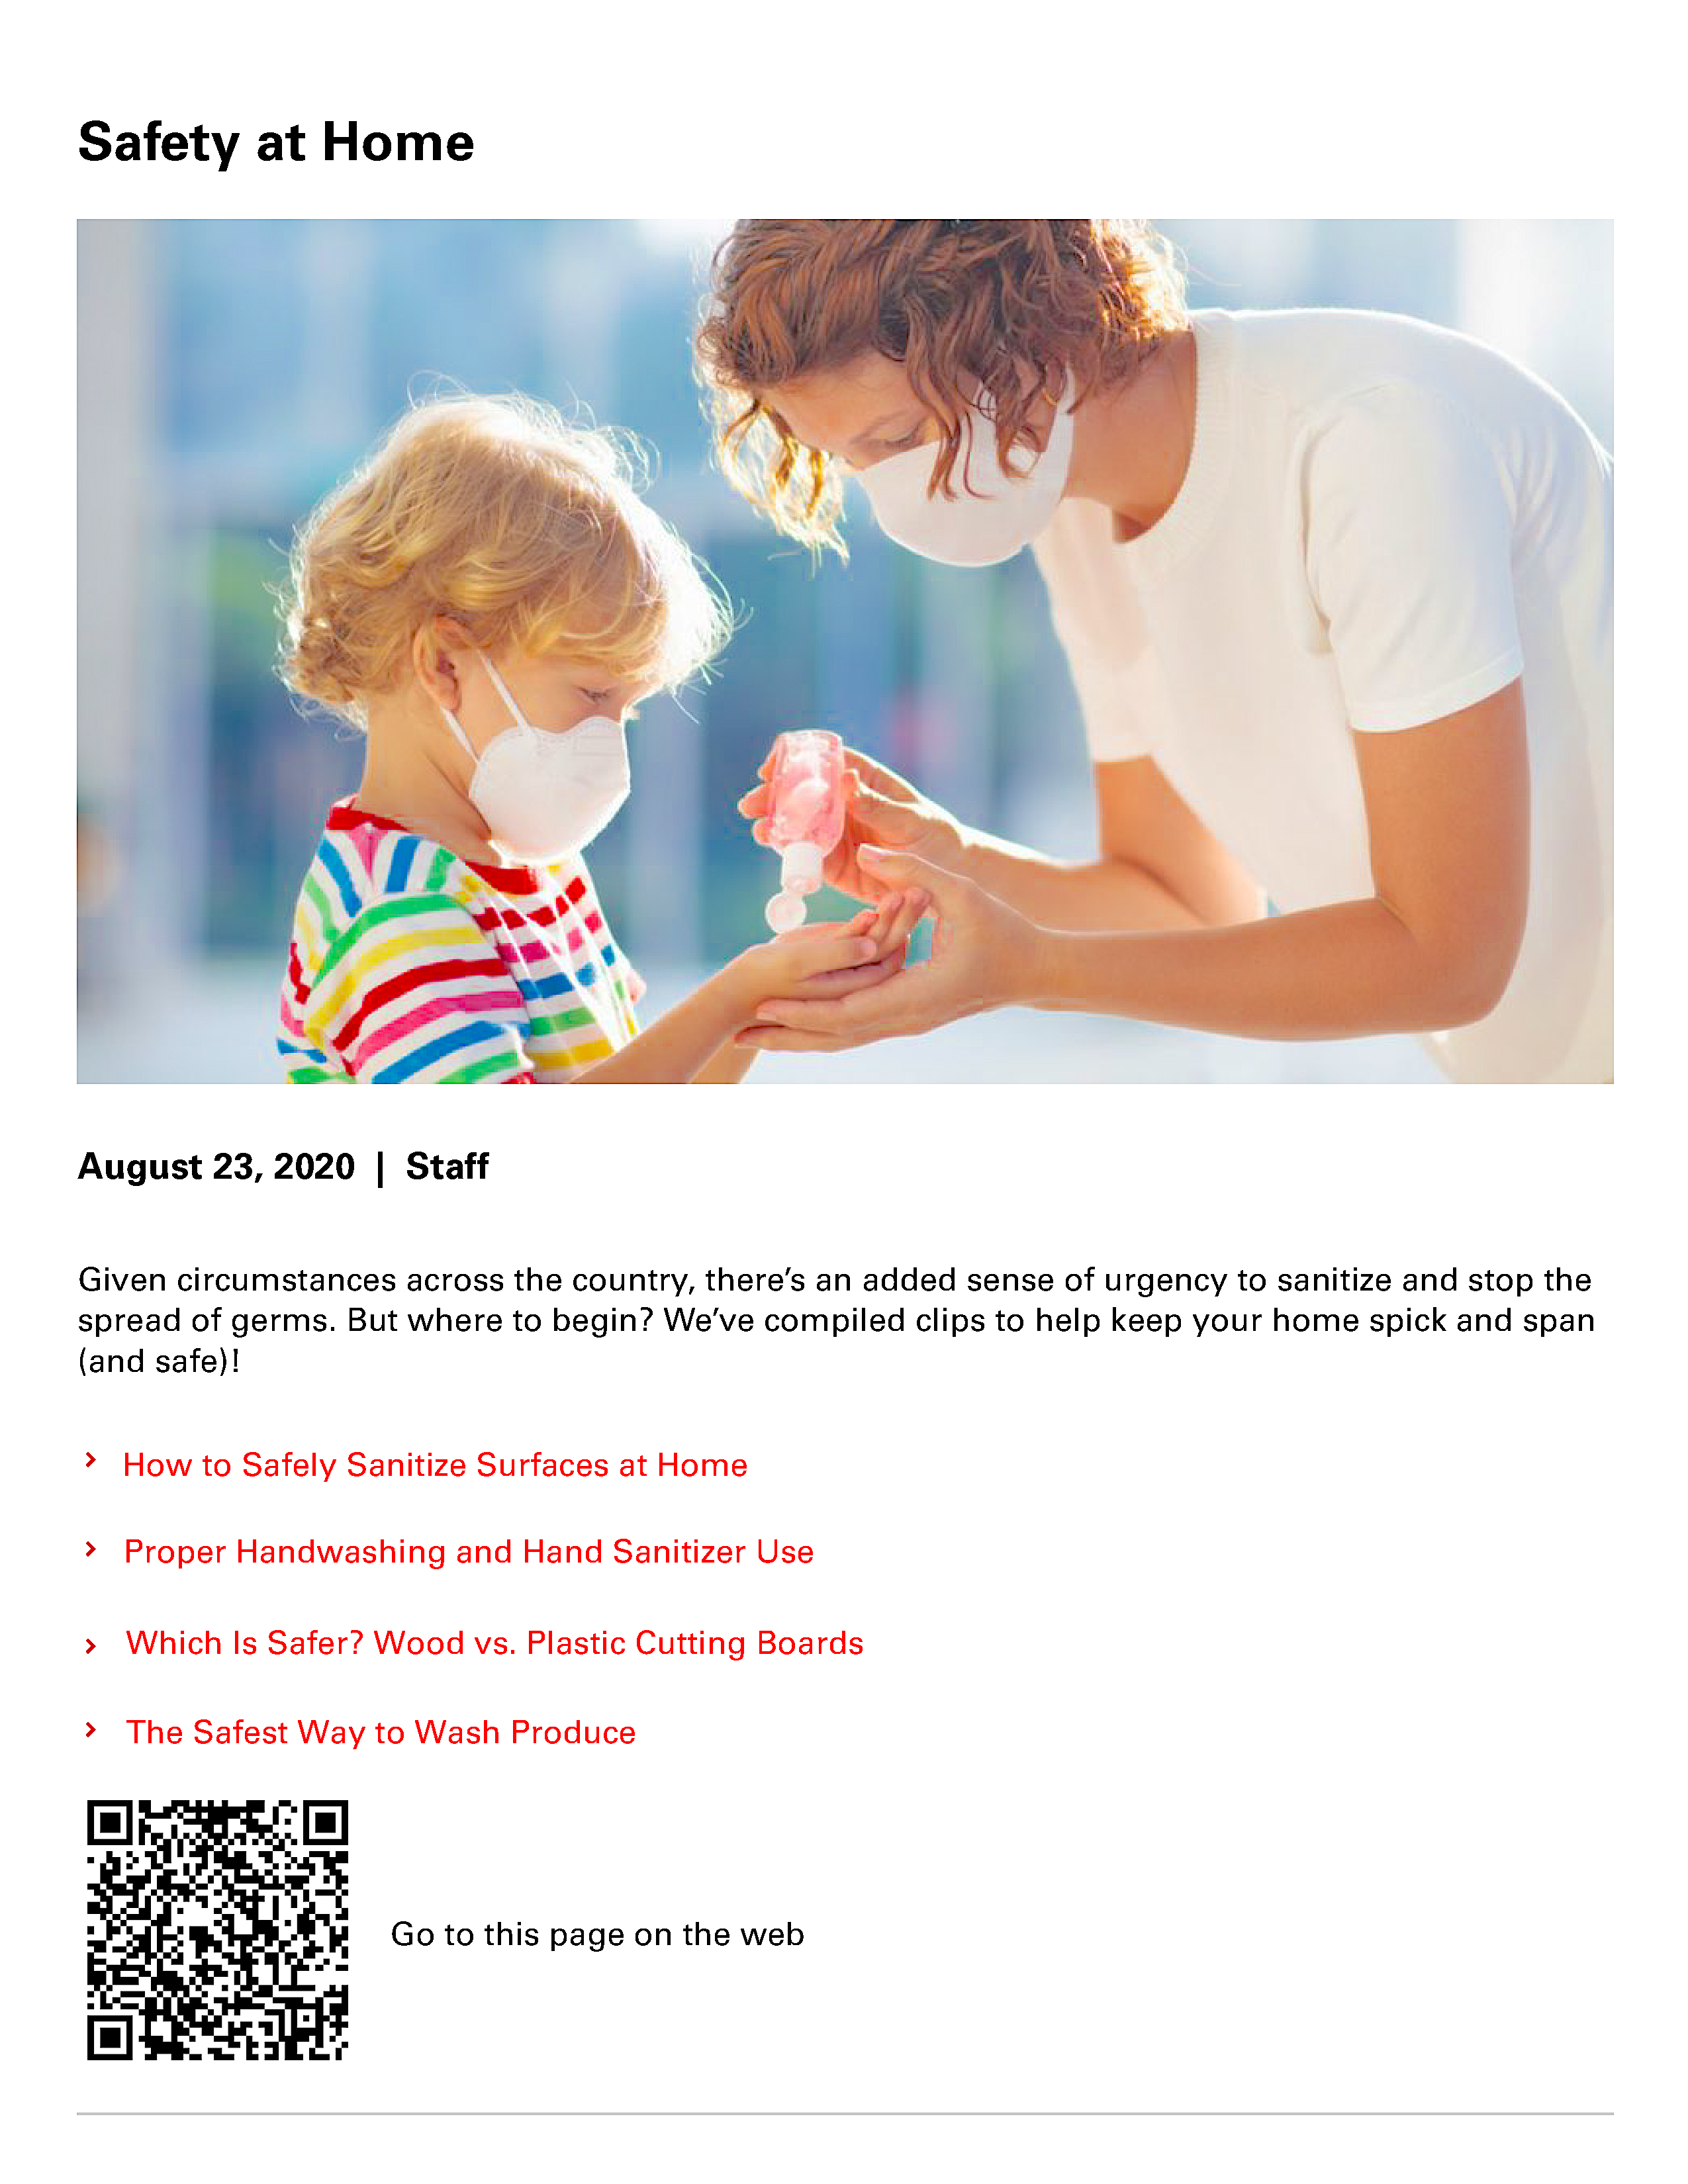 Safety at Home flyer and QR code